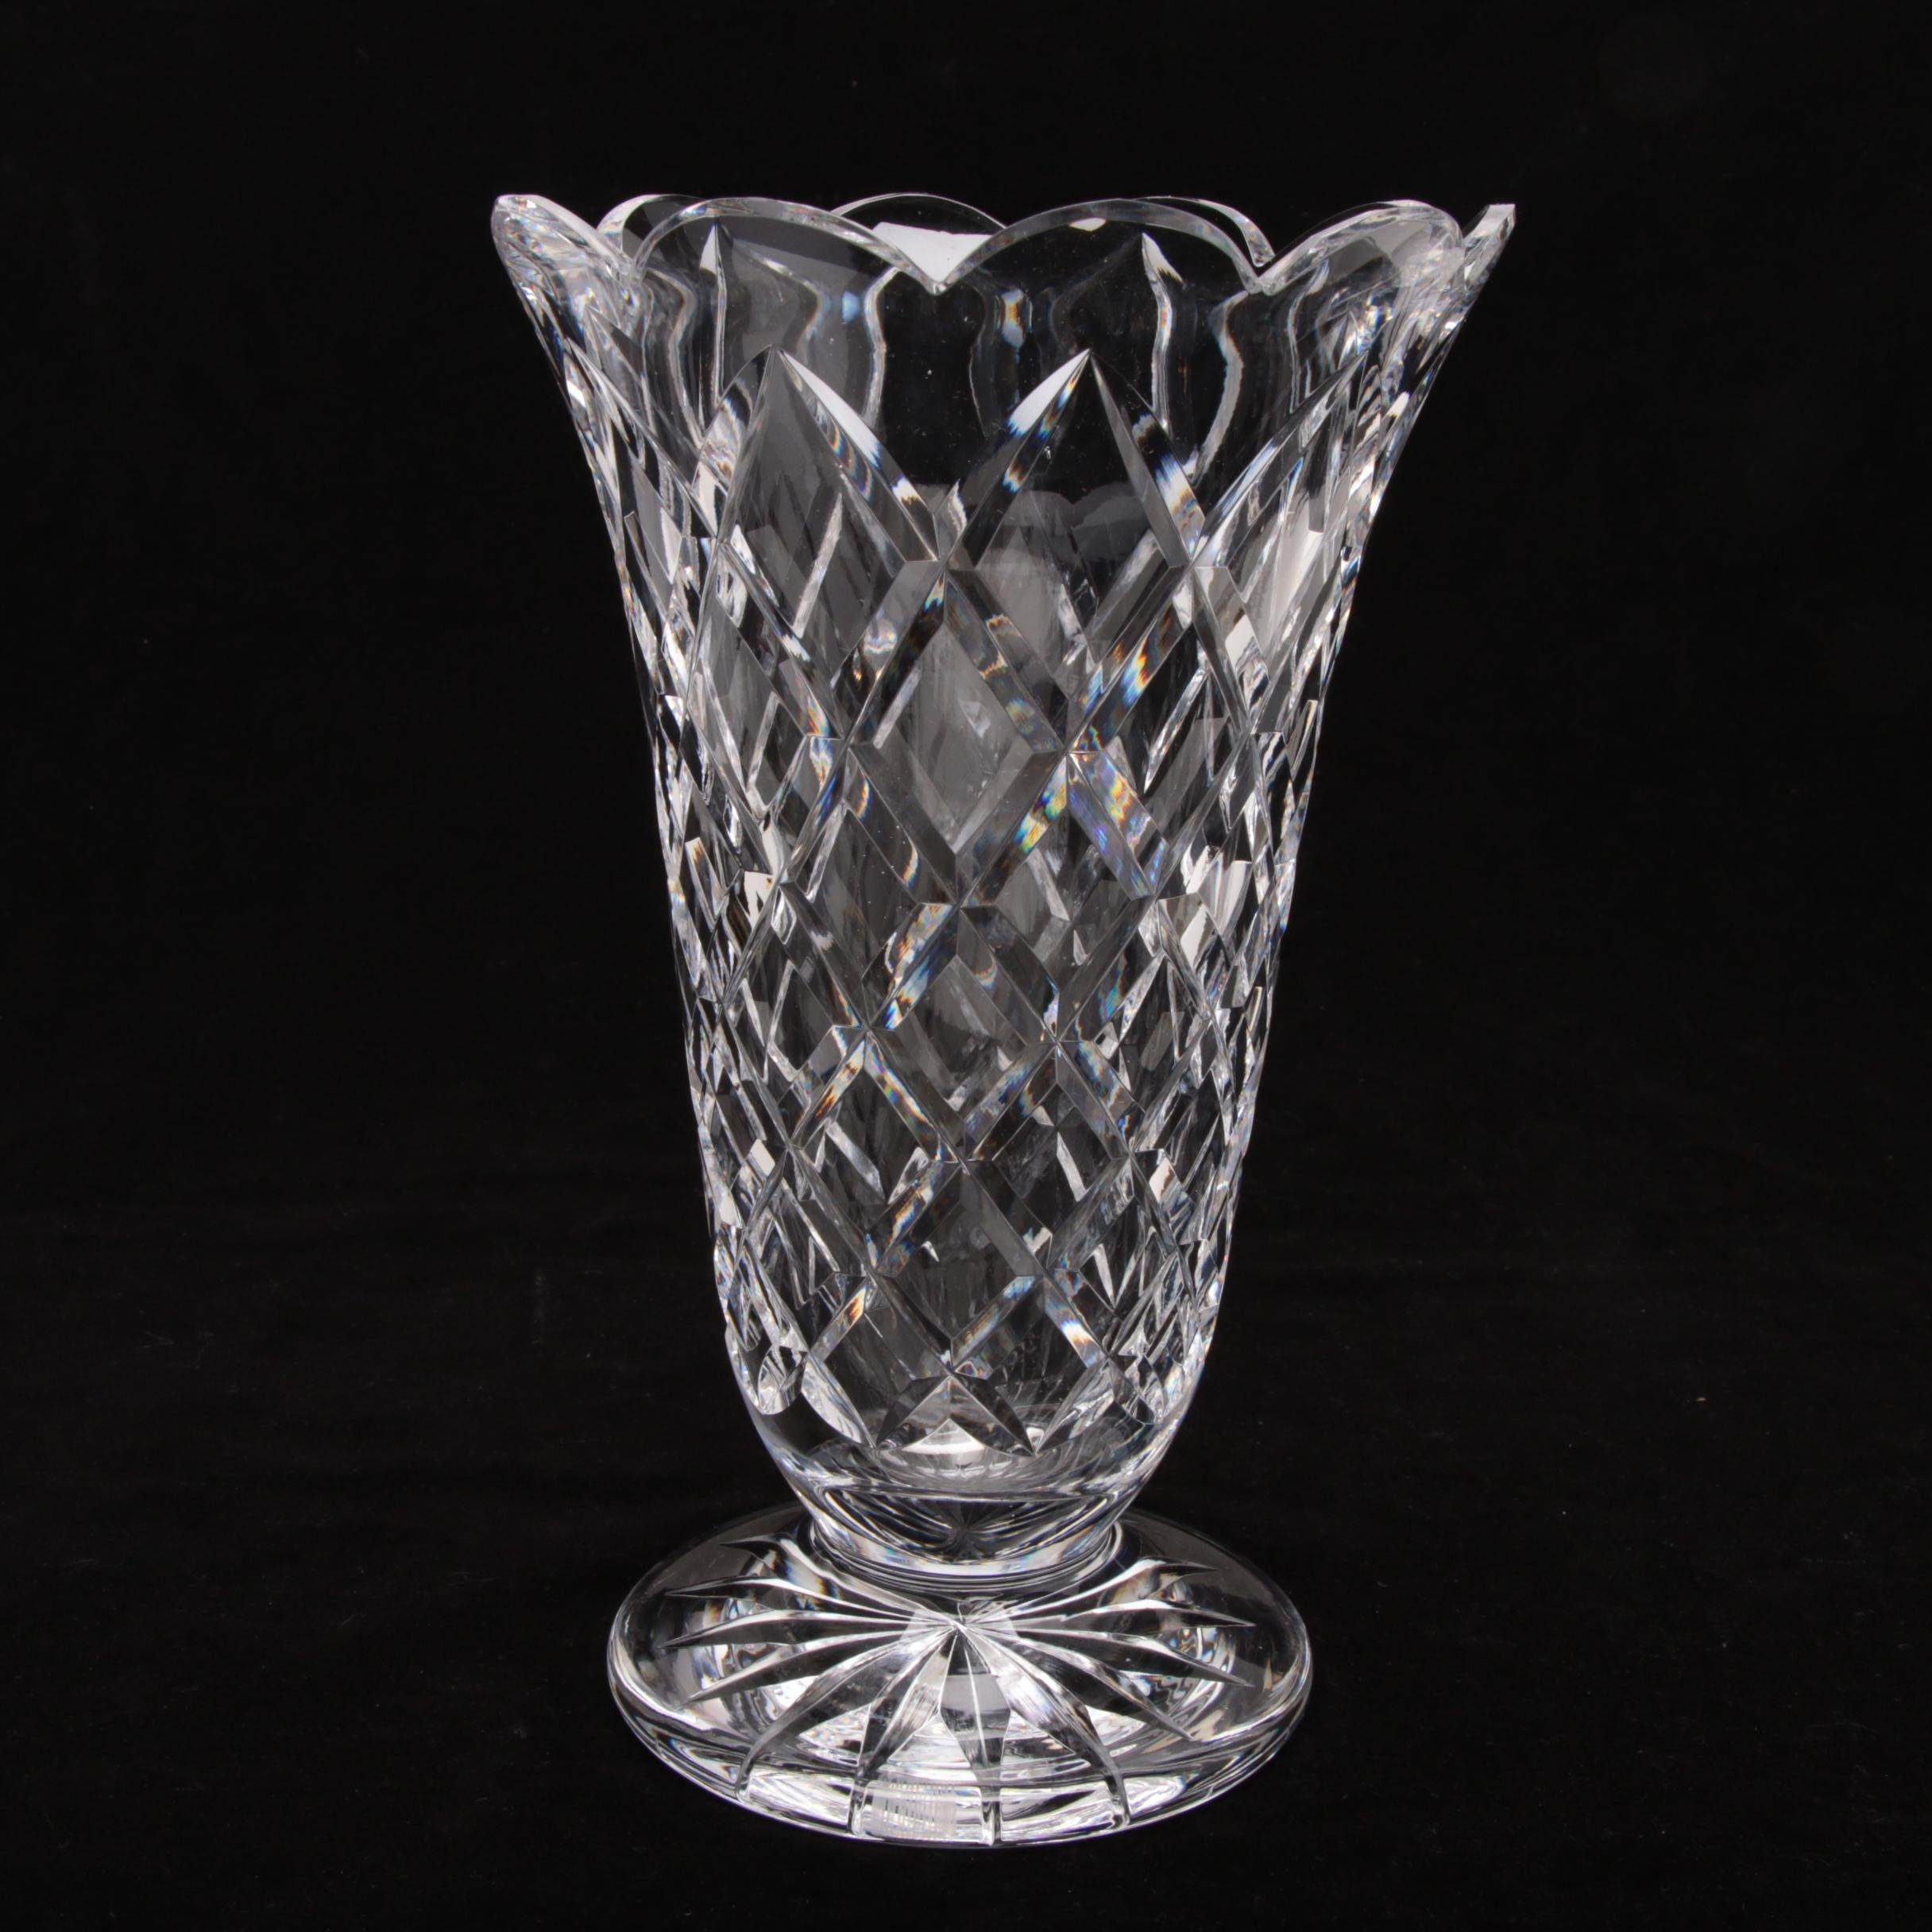 Waterford Crystal Diamond Cut Vase with Scalloped Rim and Footed Base